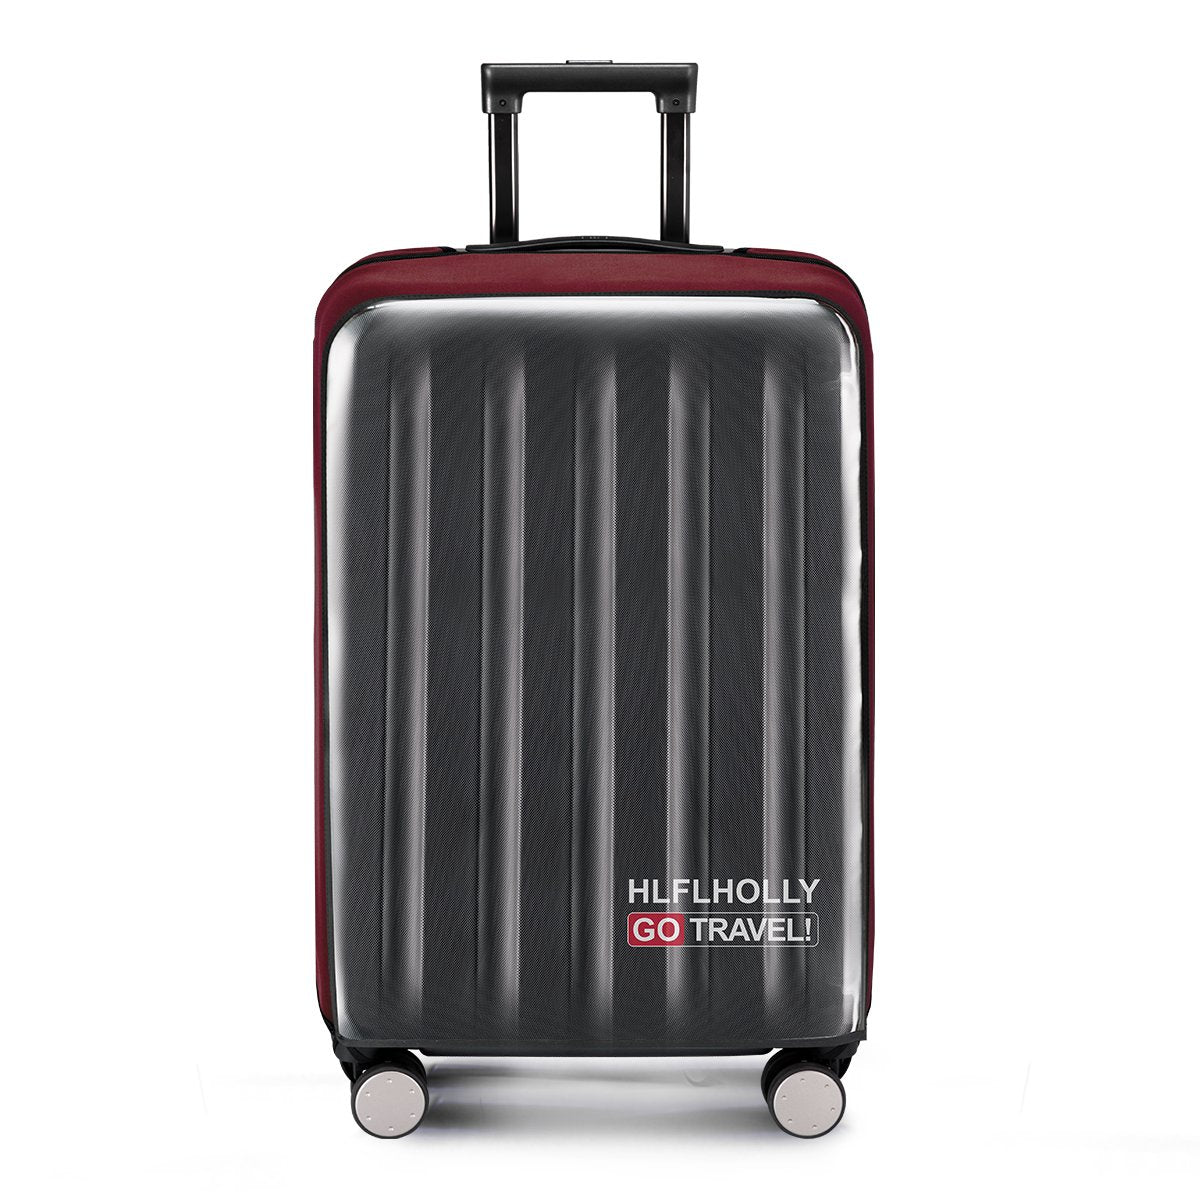 "Removing-Free Travel Luggage Cover Suitcase Protector Fits 24 Inch Luggage Fits 20""22""24""26""28""30"" Inch(Elastic cloth+Clear pvc)24"",Wine Red"